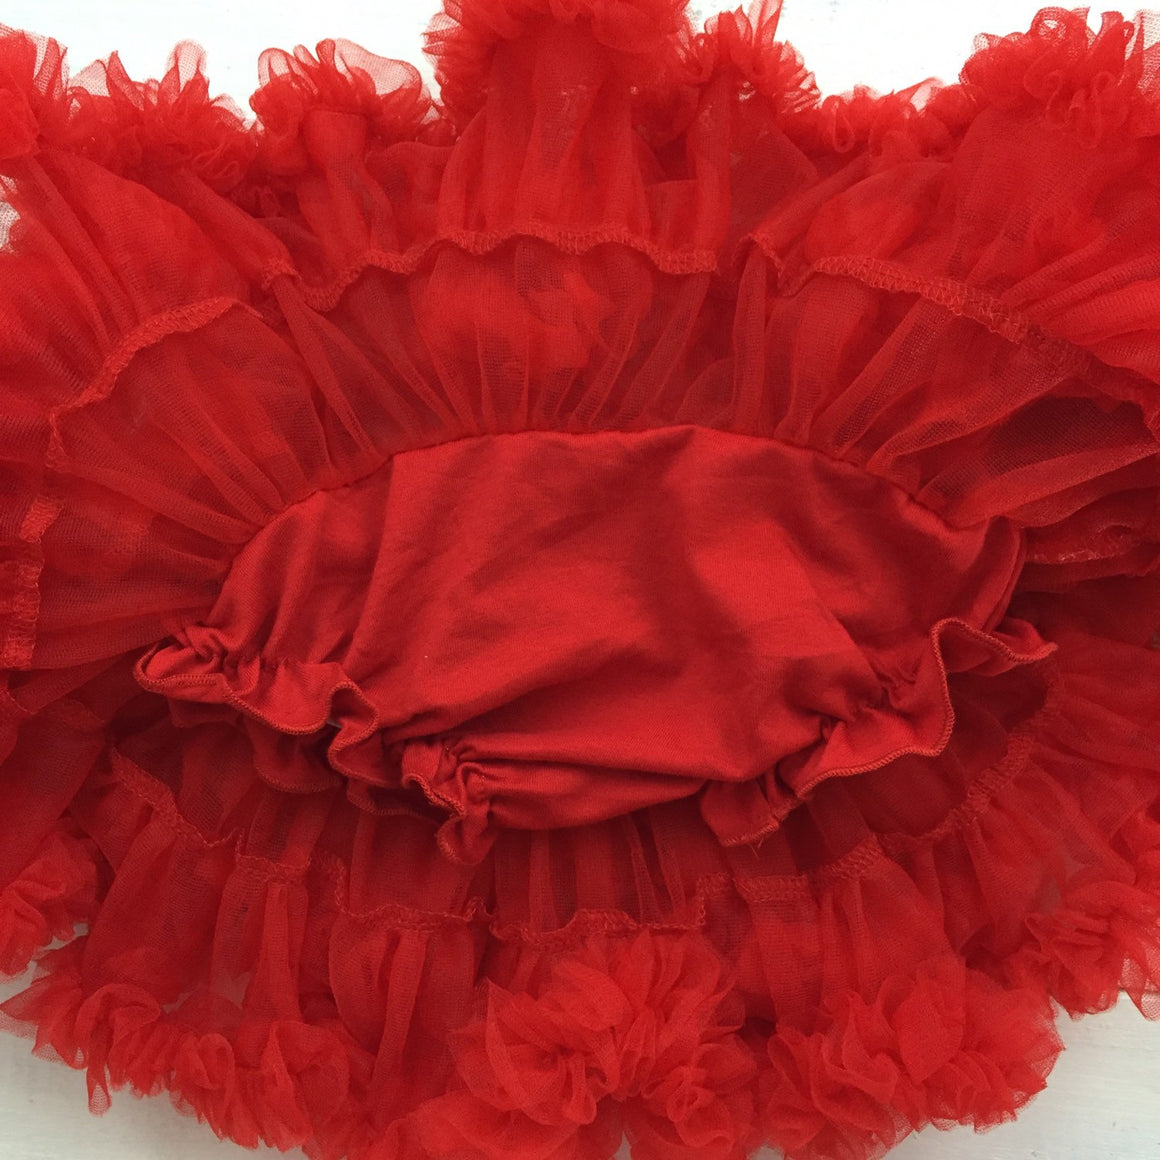 Red Pettiskirt - embellished flower